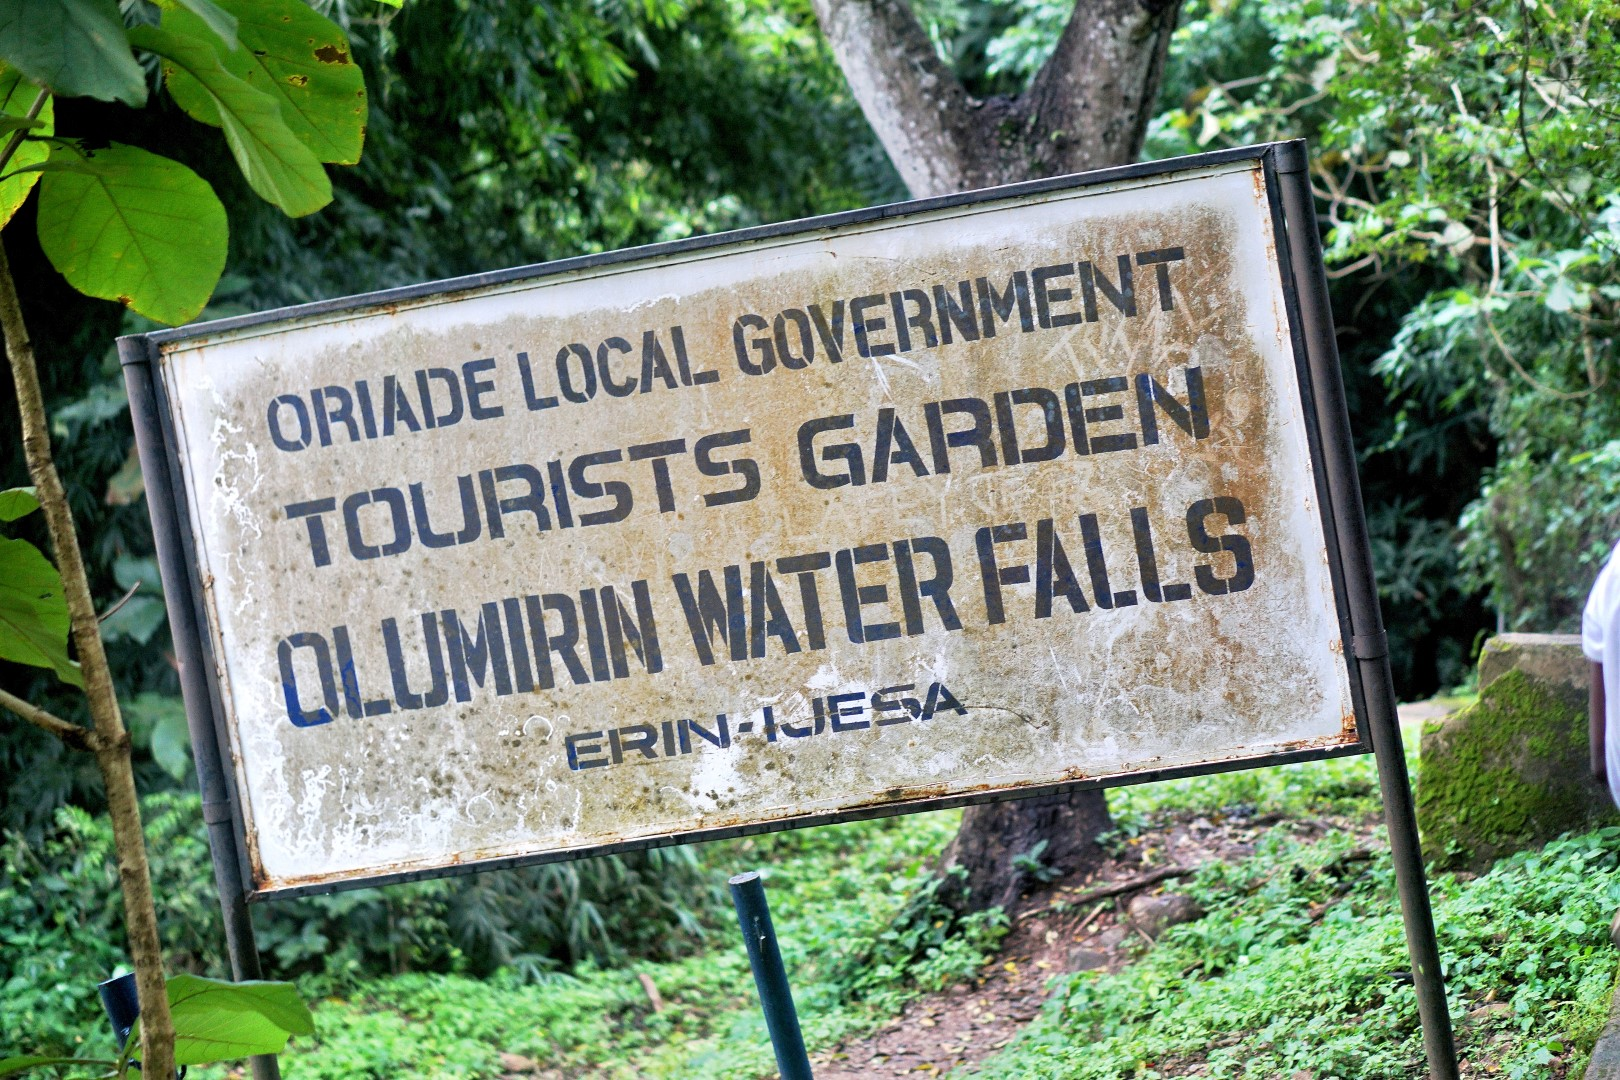 TravelNigeria || My Road Trip From Lagos To Experience The Erin Ijesha  Waterfall.